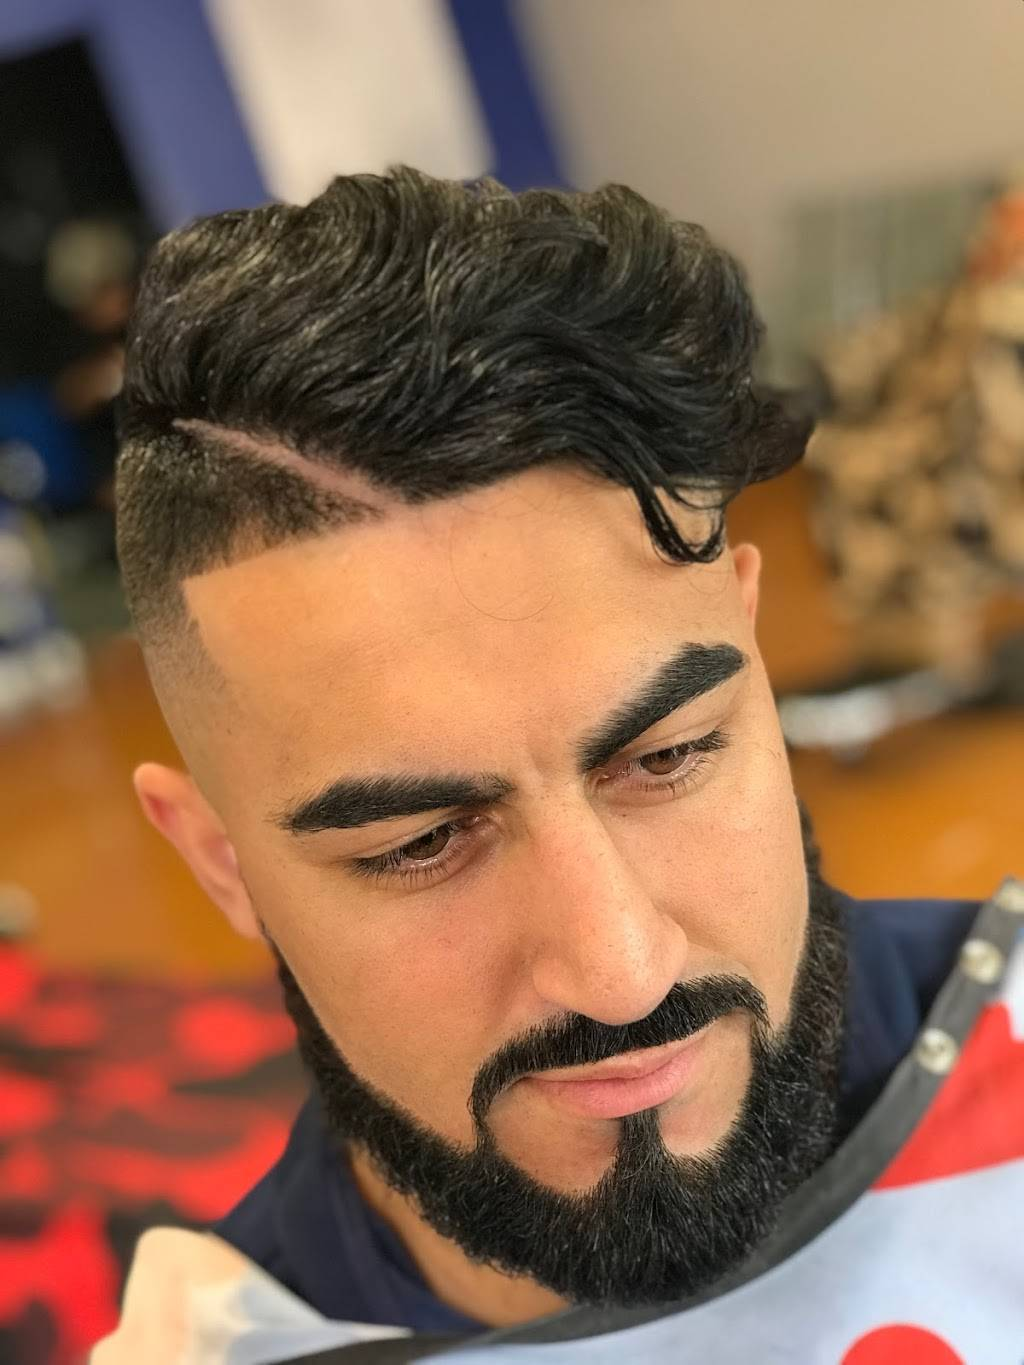 Supreme Barbering LLC - hair care  | Photo 9 of 10 | Address: 1705 N Broadway Ave, Oklahoma City, OK 73103, USA | Phone: (405) 601-7087